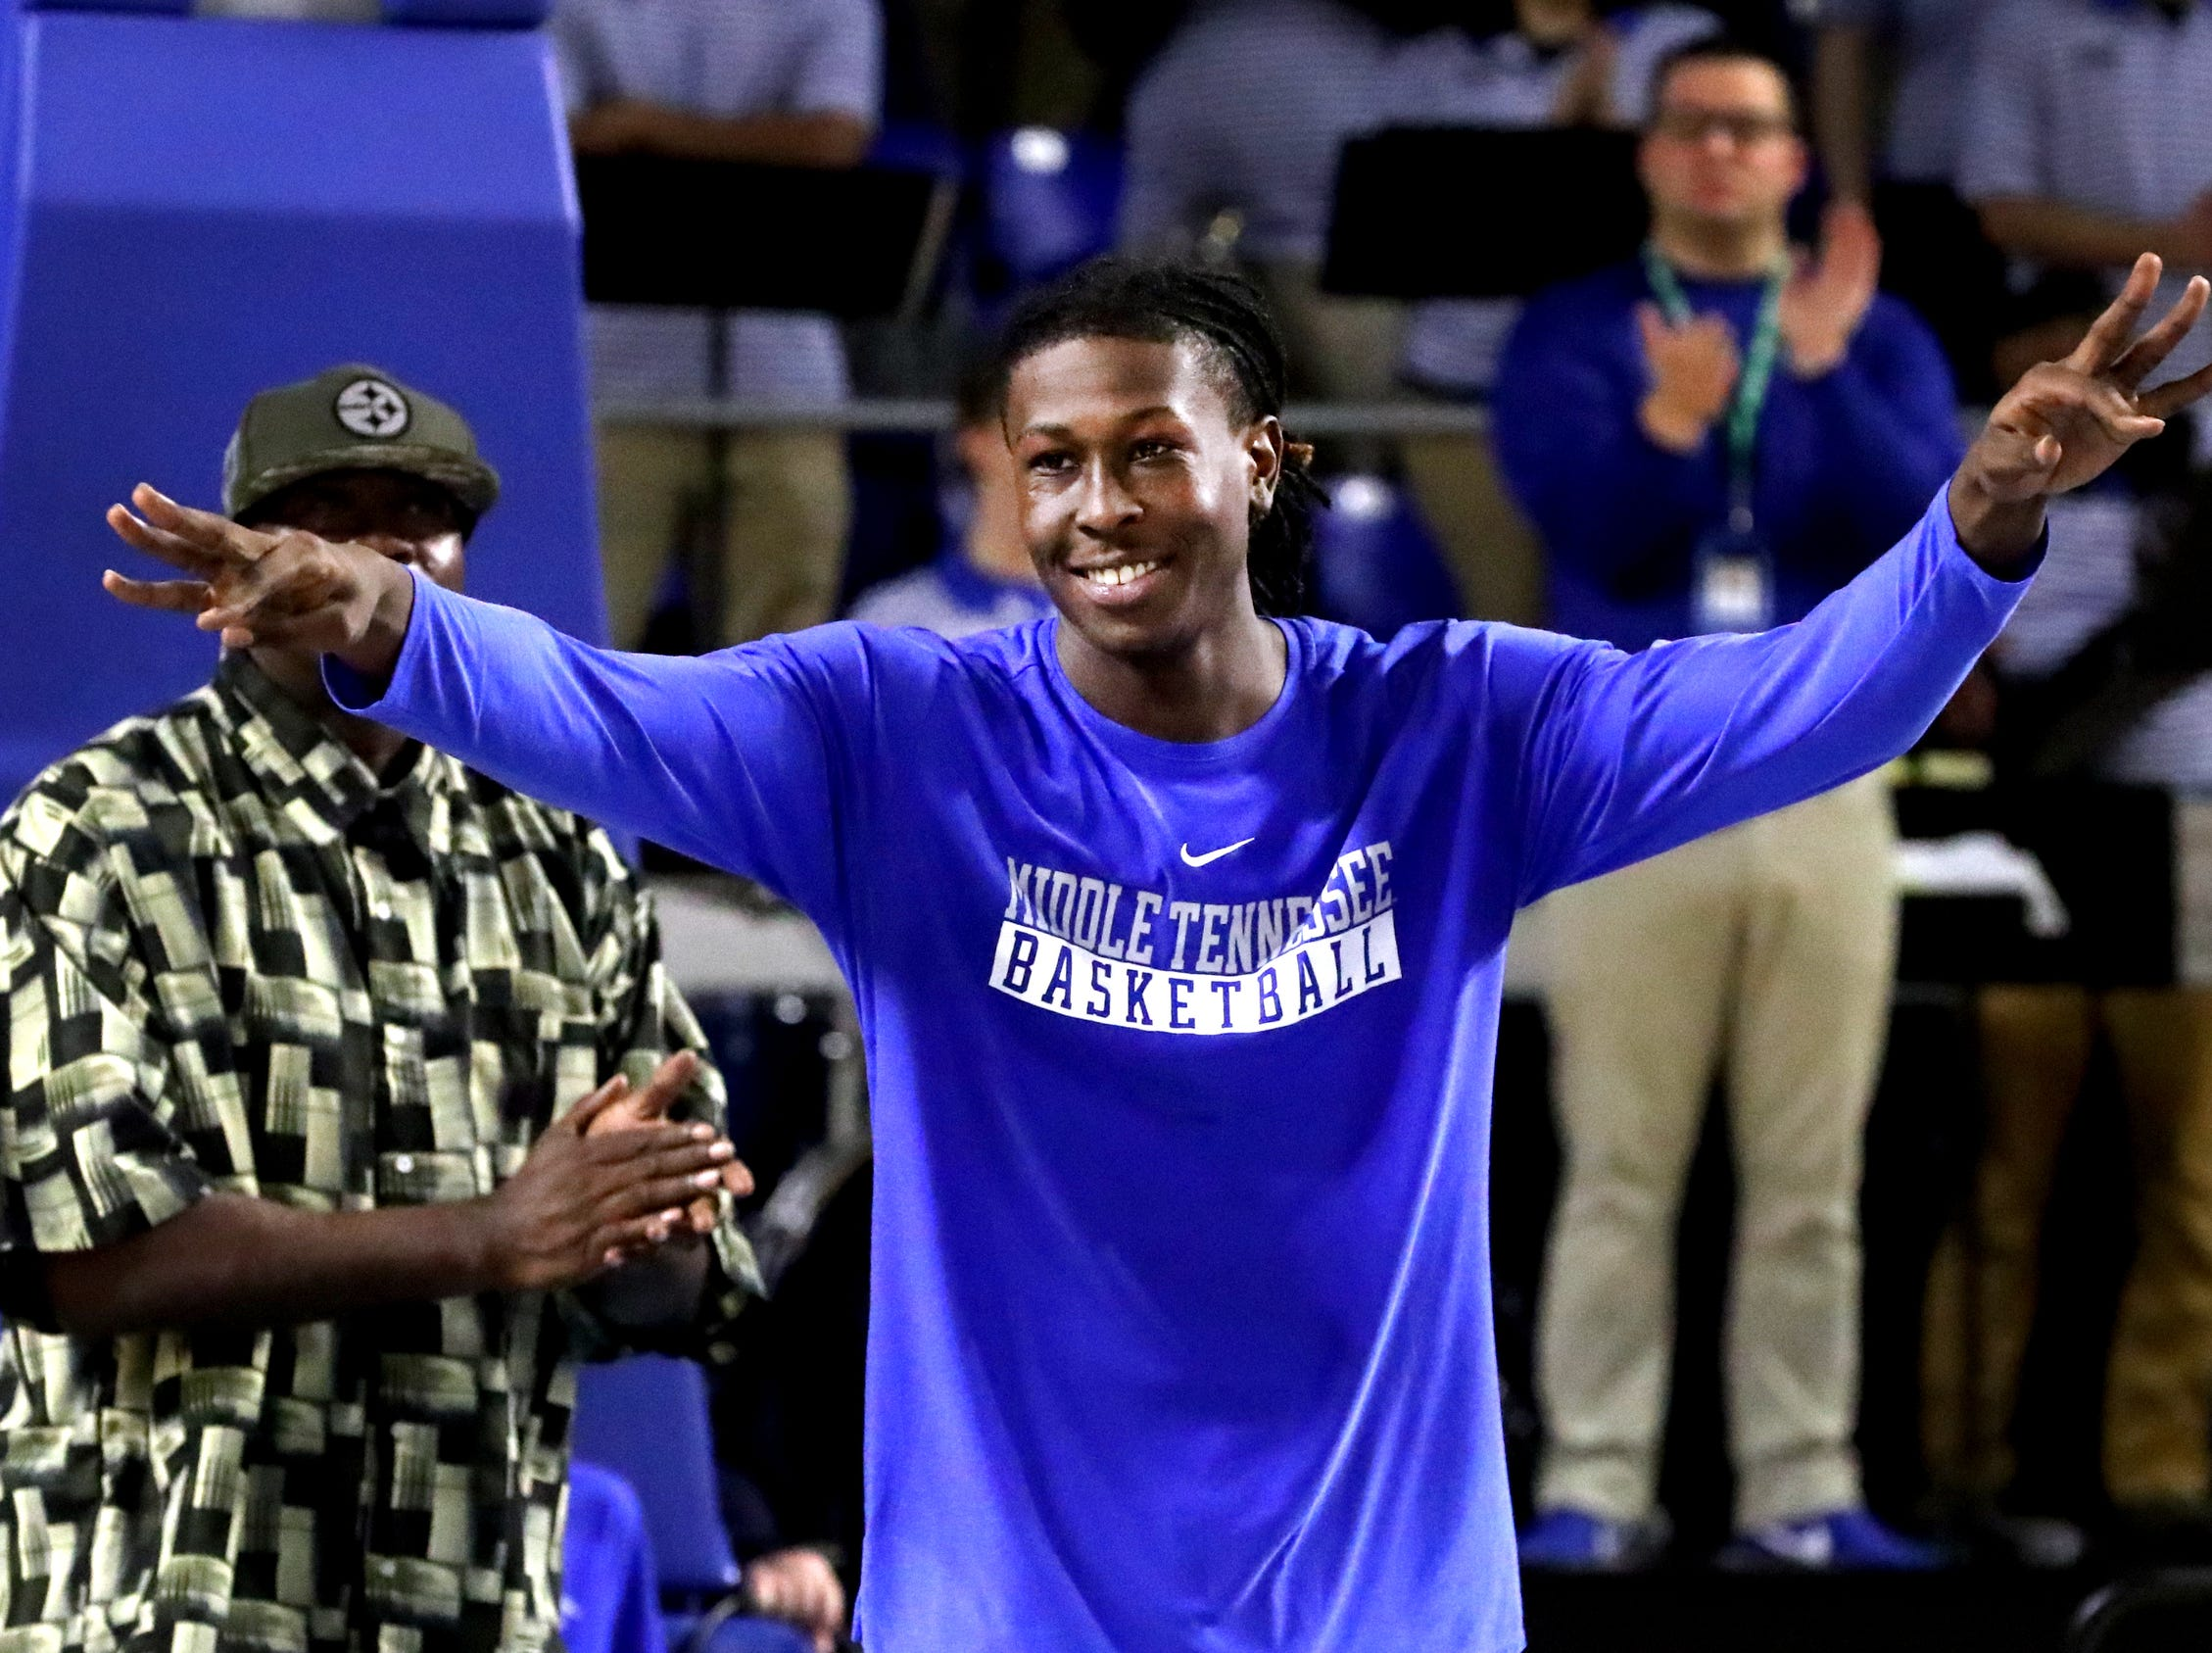 MTSU senior forward James Hawthorne (4) was honored on senior night before the game against UTEP on Saturday, March 9, 2019, at Murphy Center in Murfreesboro, Tenn.